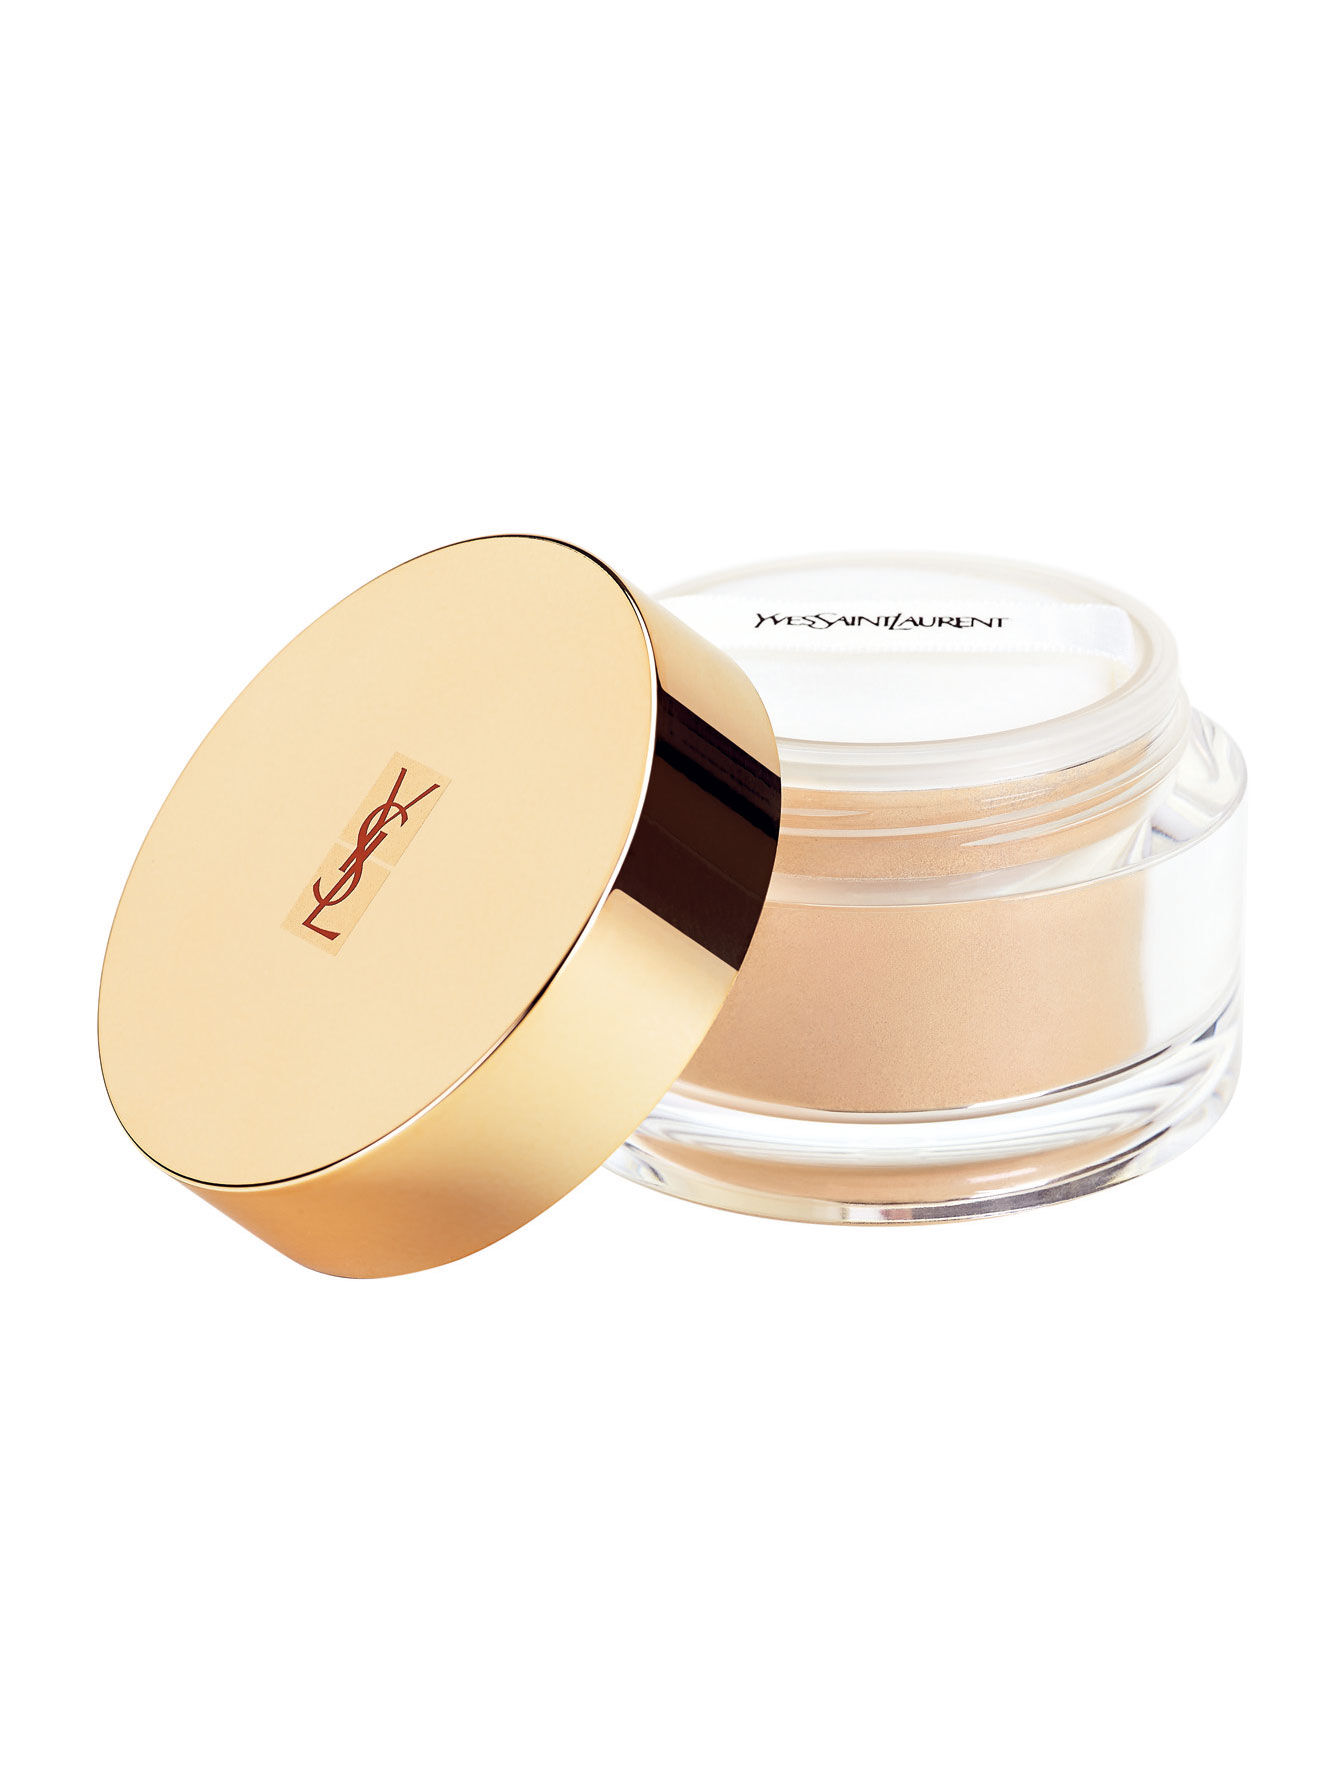 Image result for ysl souffle d'eclat